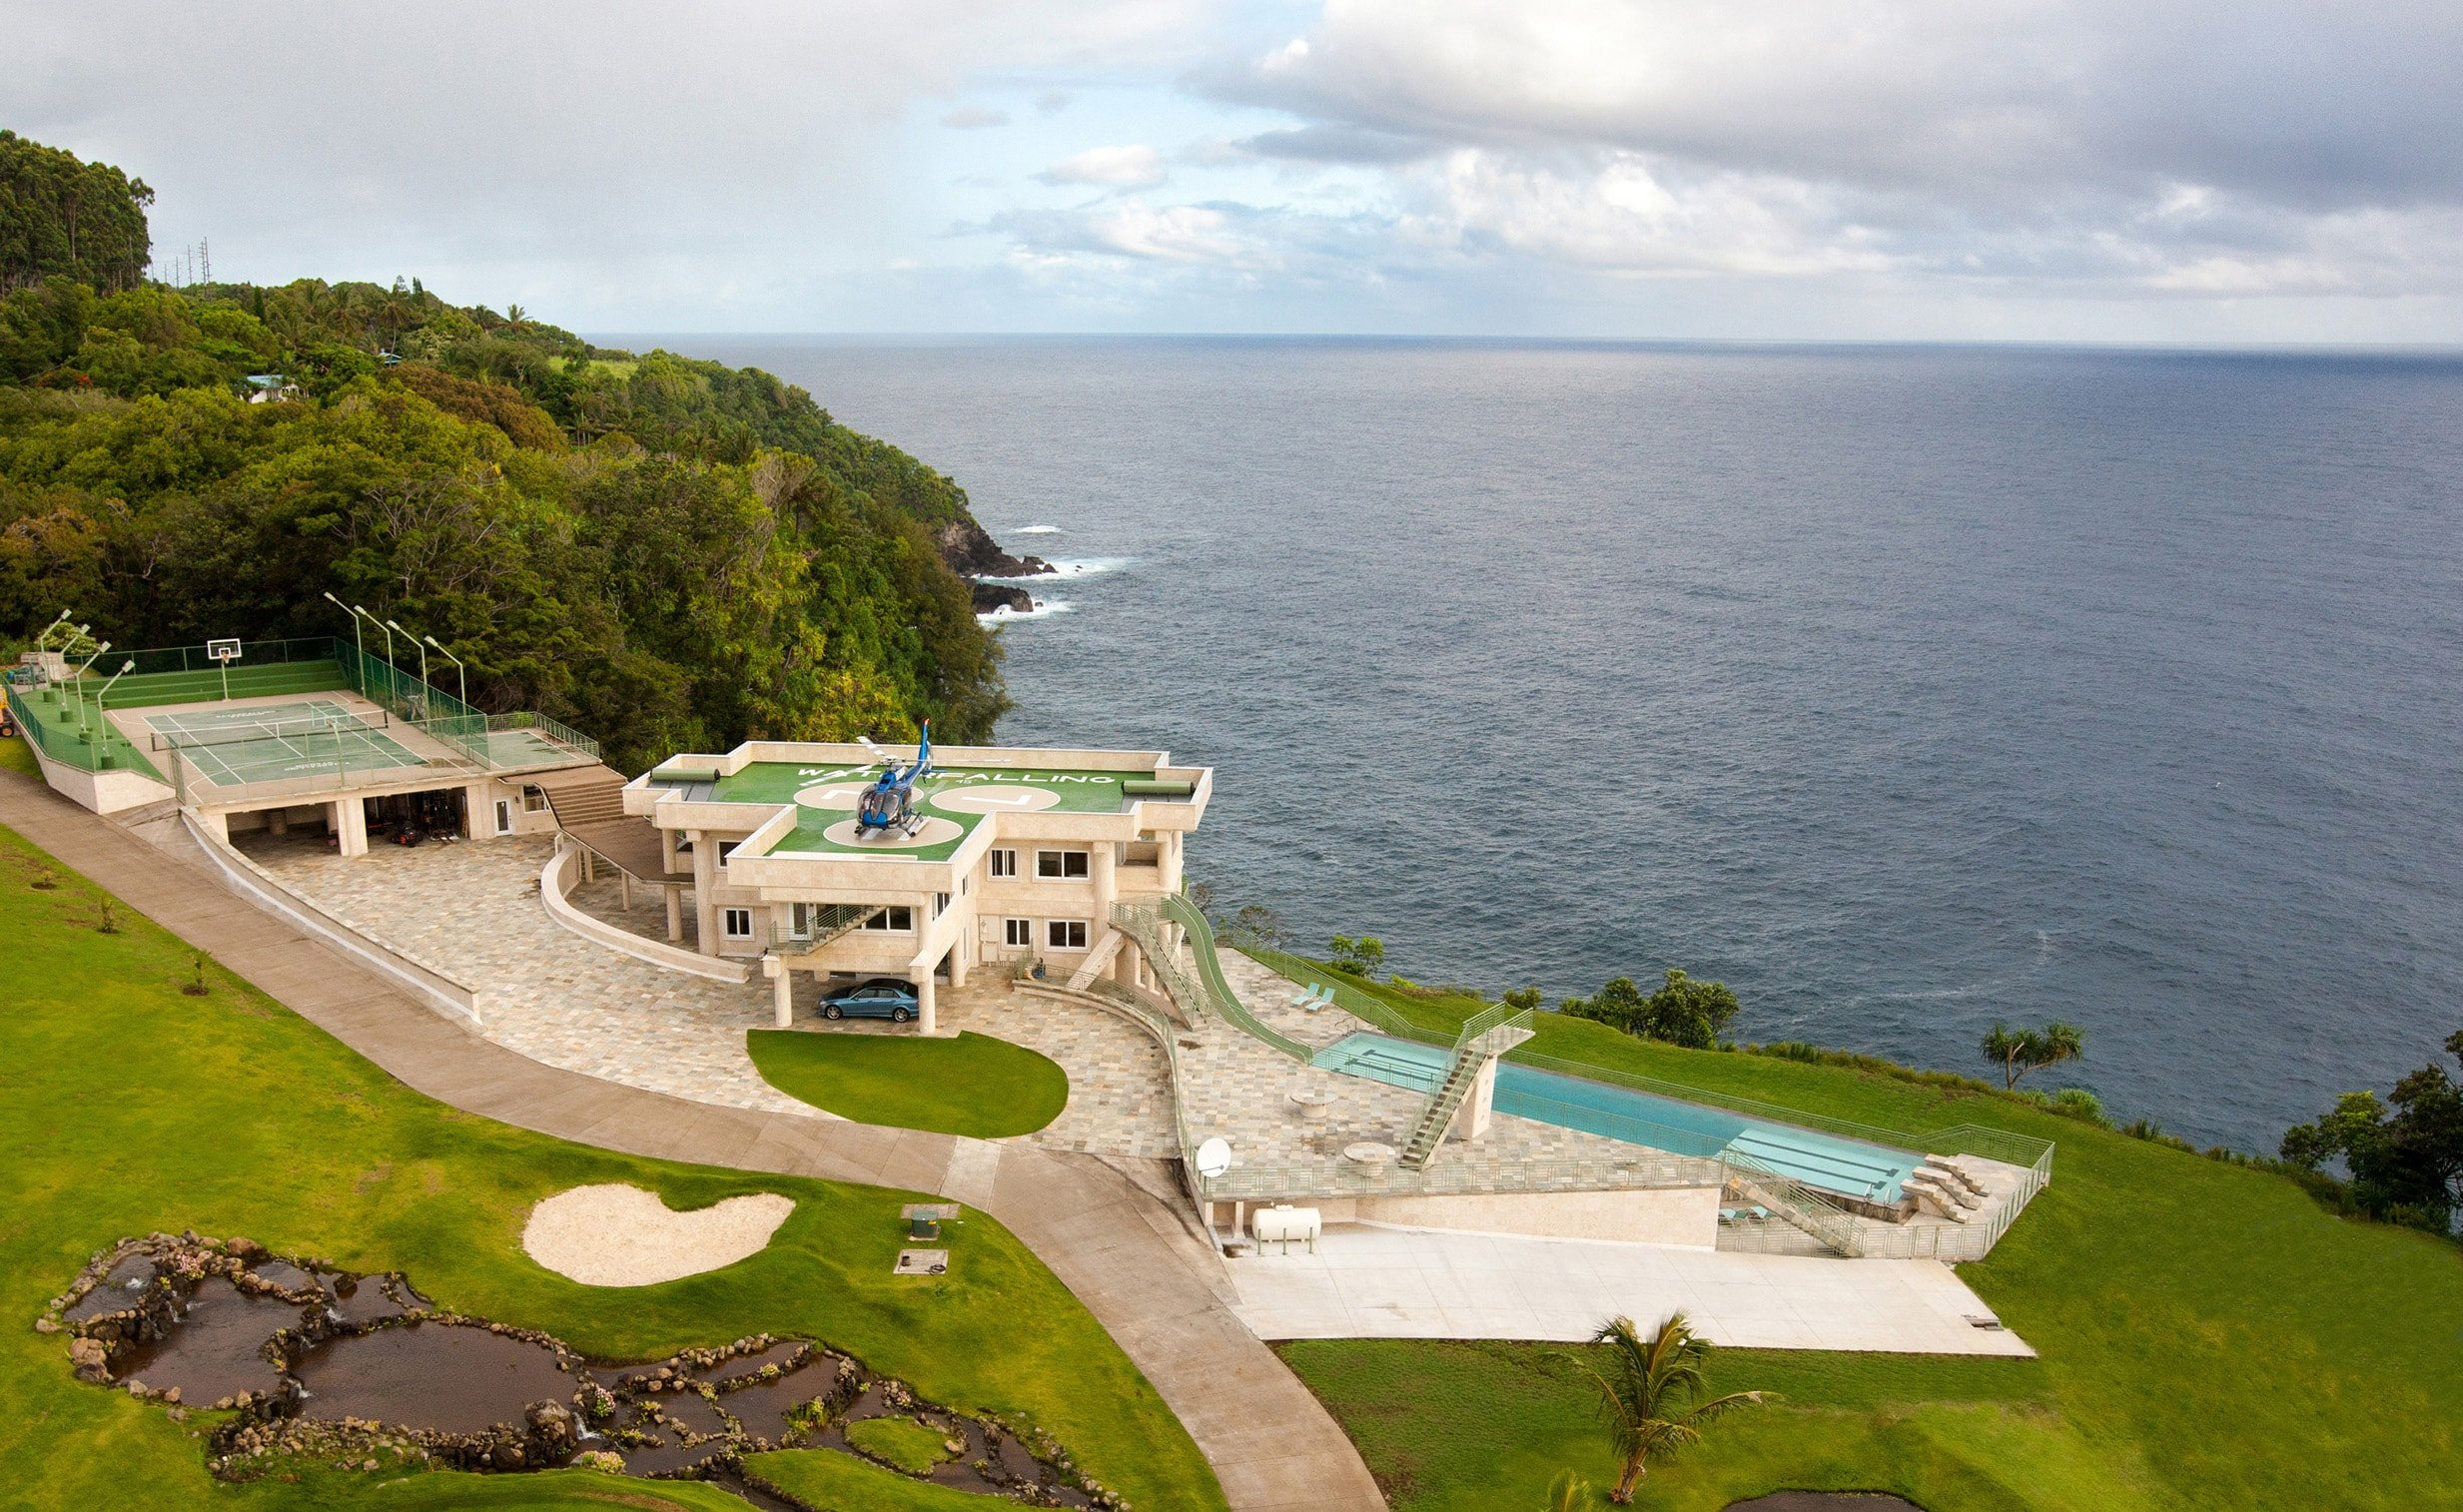 The Water Falling Estate with full ocean views. Image courtesy of Toptenrealestatedeals.com.